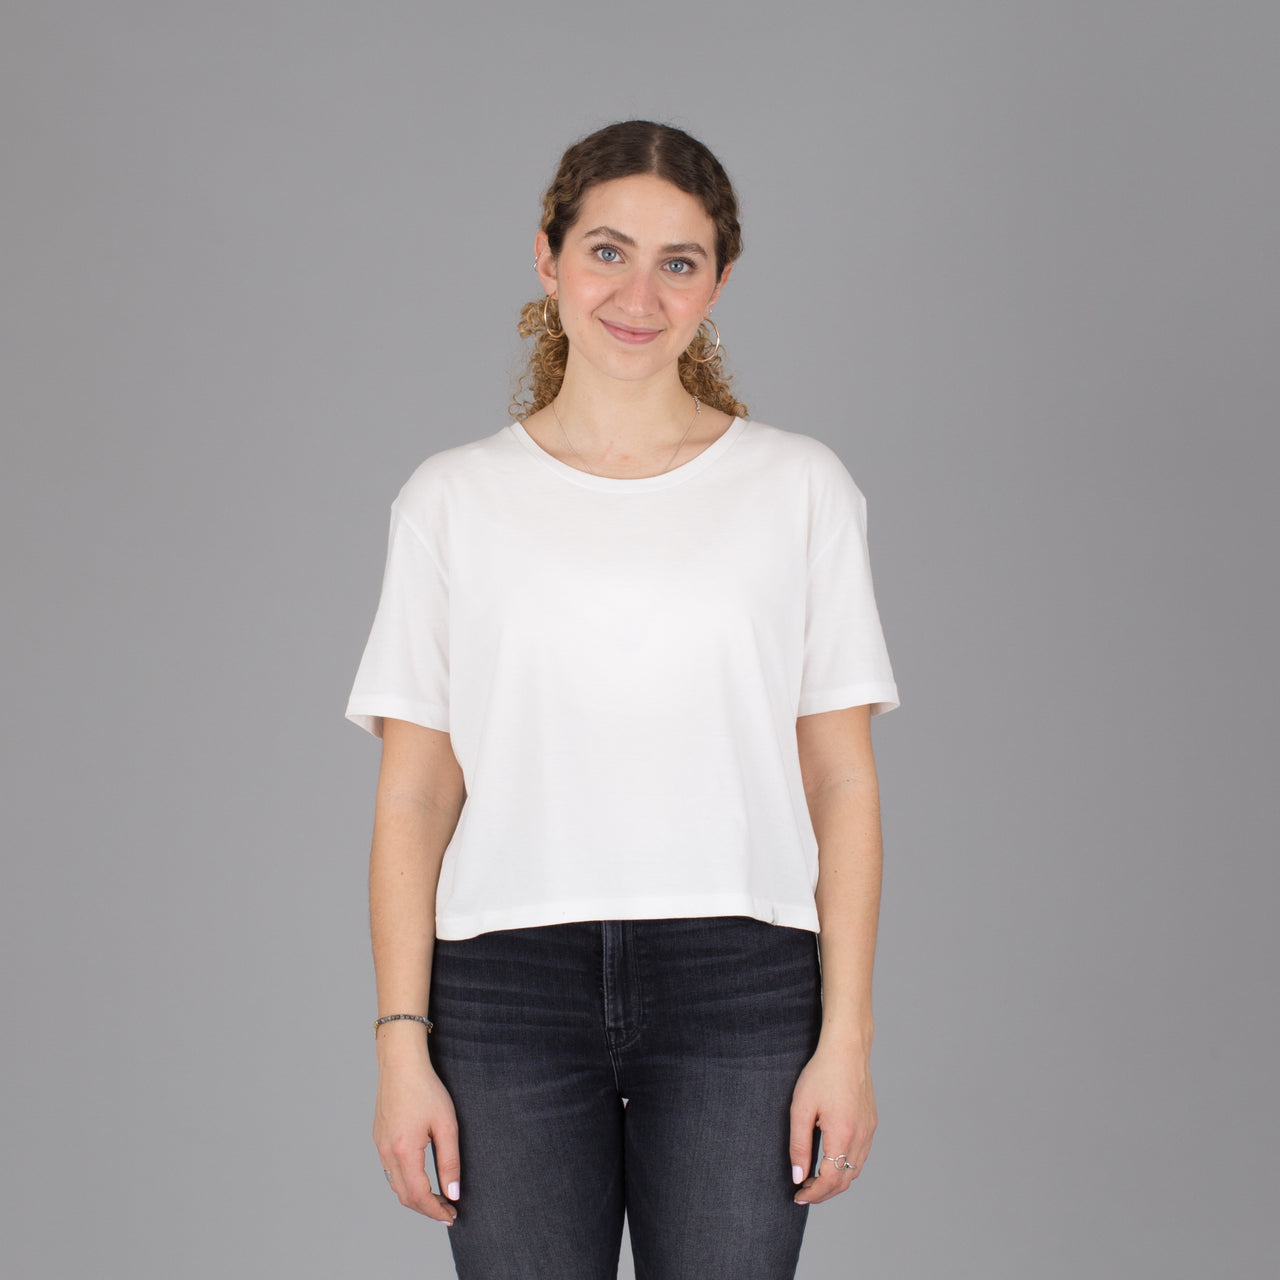 Current Fit Organic Cotton Tee - White